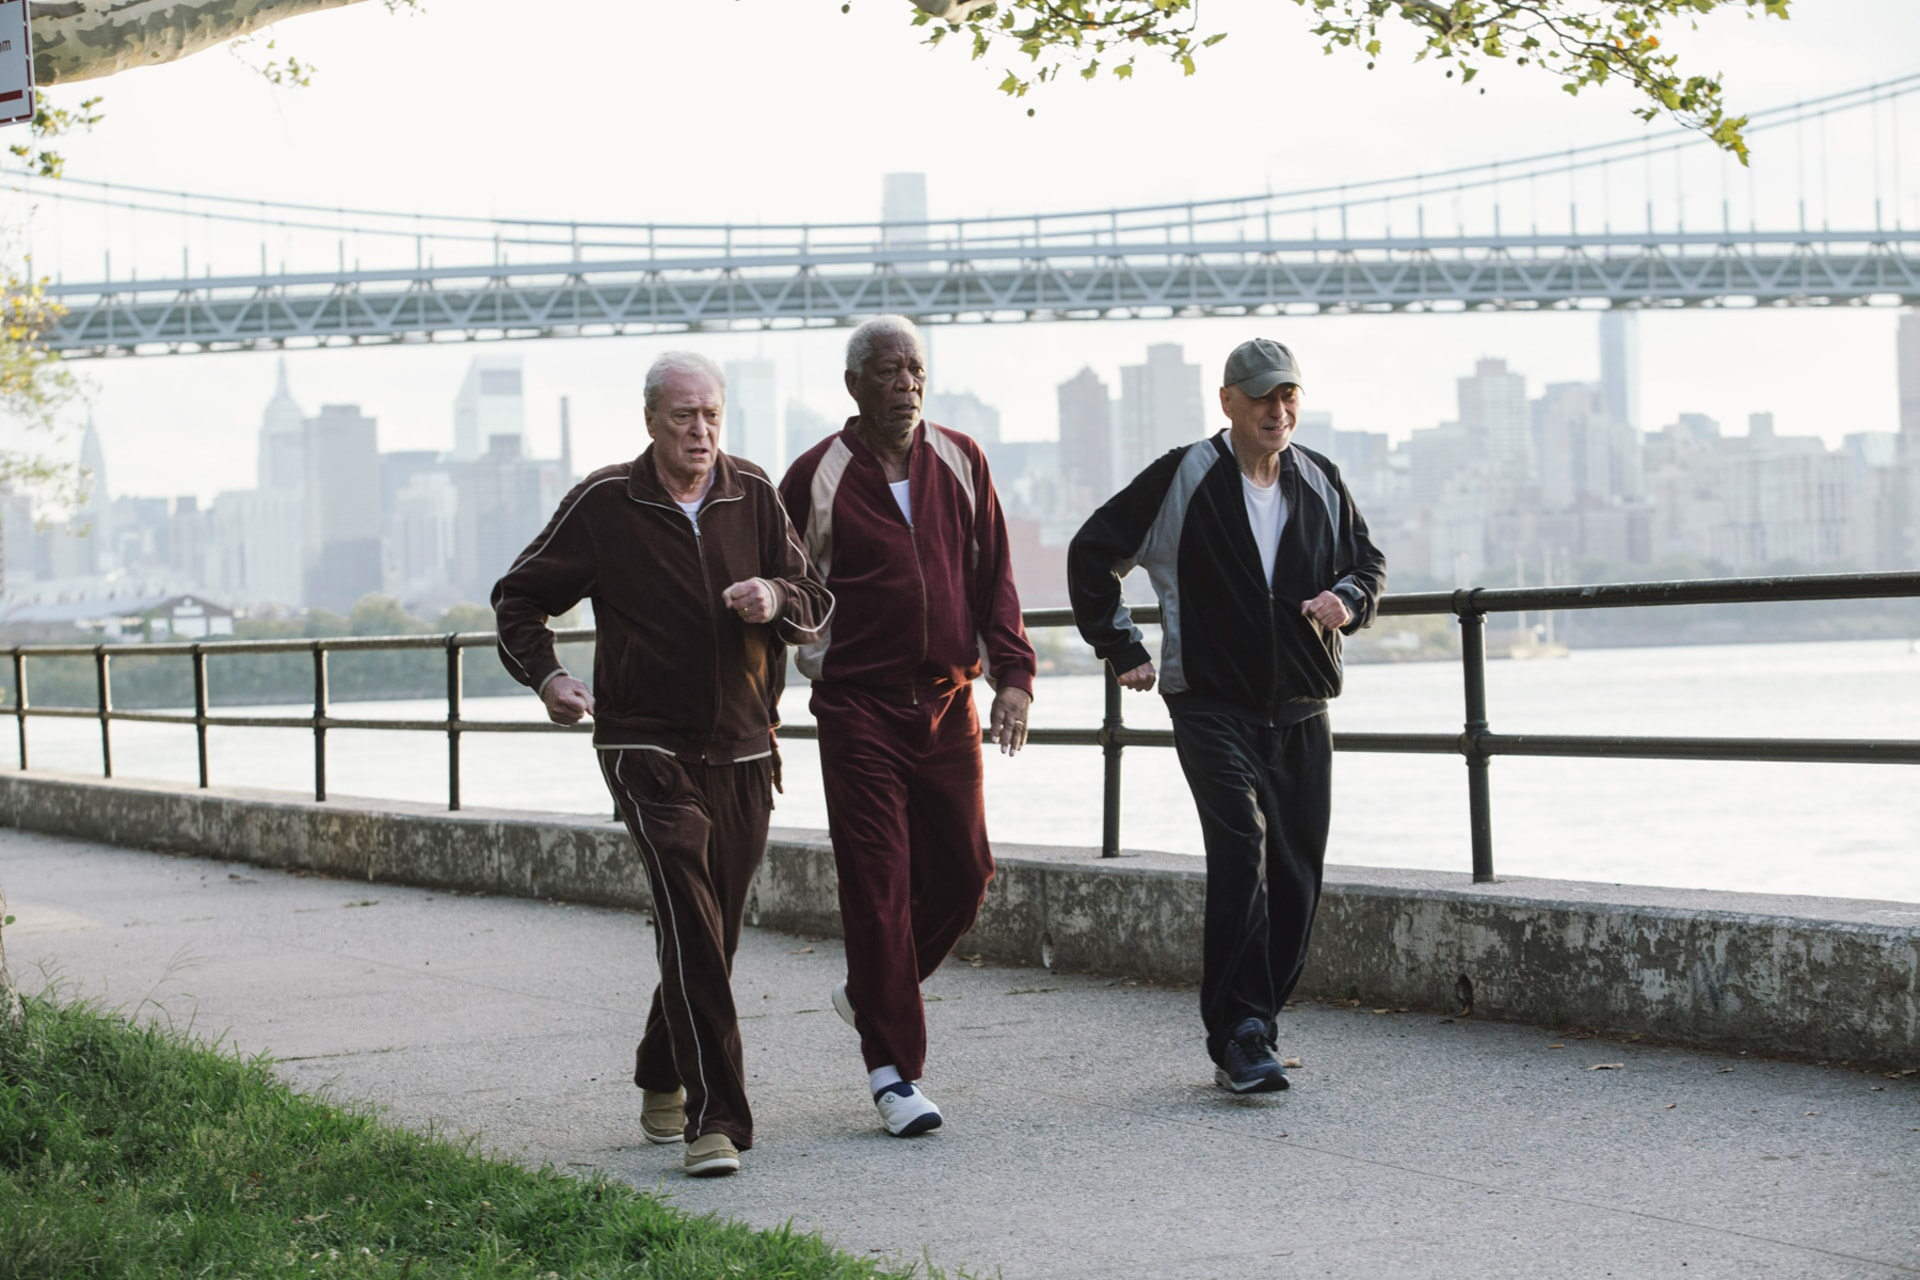 """MICHAEL CAINE as Joe Harding, MORGAN FREEMAN as Willie Davis and ALAN ARKIN as Albert Garner in the New Line Cinema and Village Roadshow comedy """"GOING IN STYLE,"""" a Warner Bros. Pictures"""